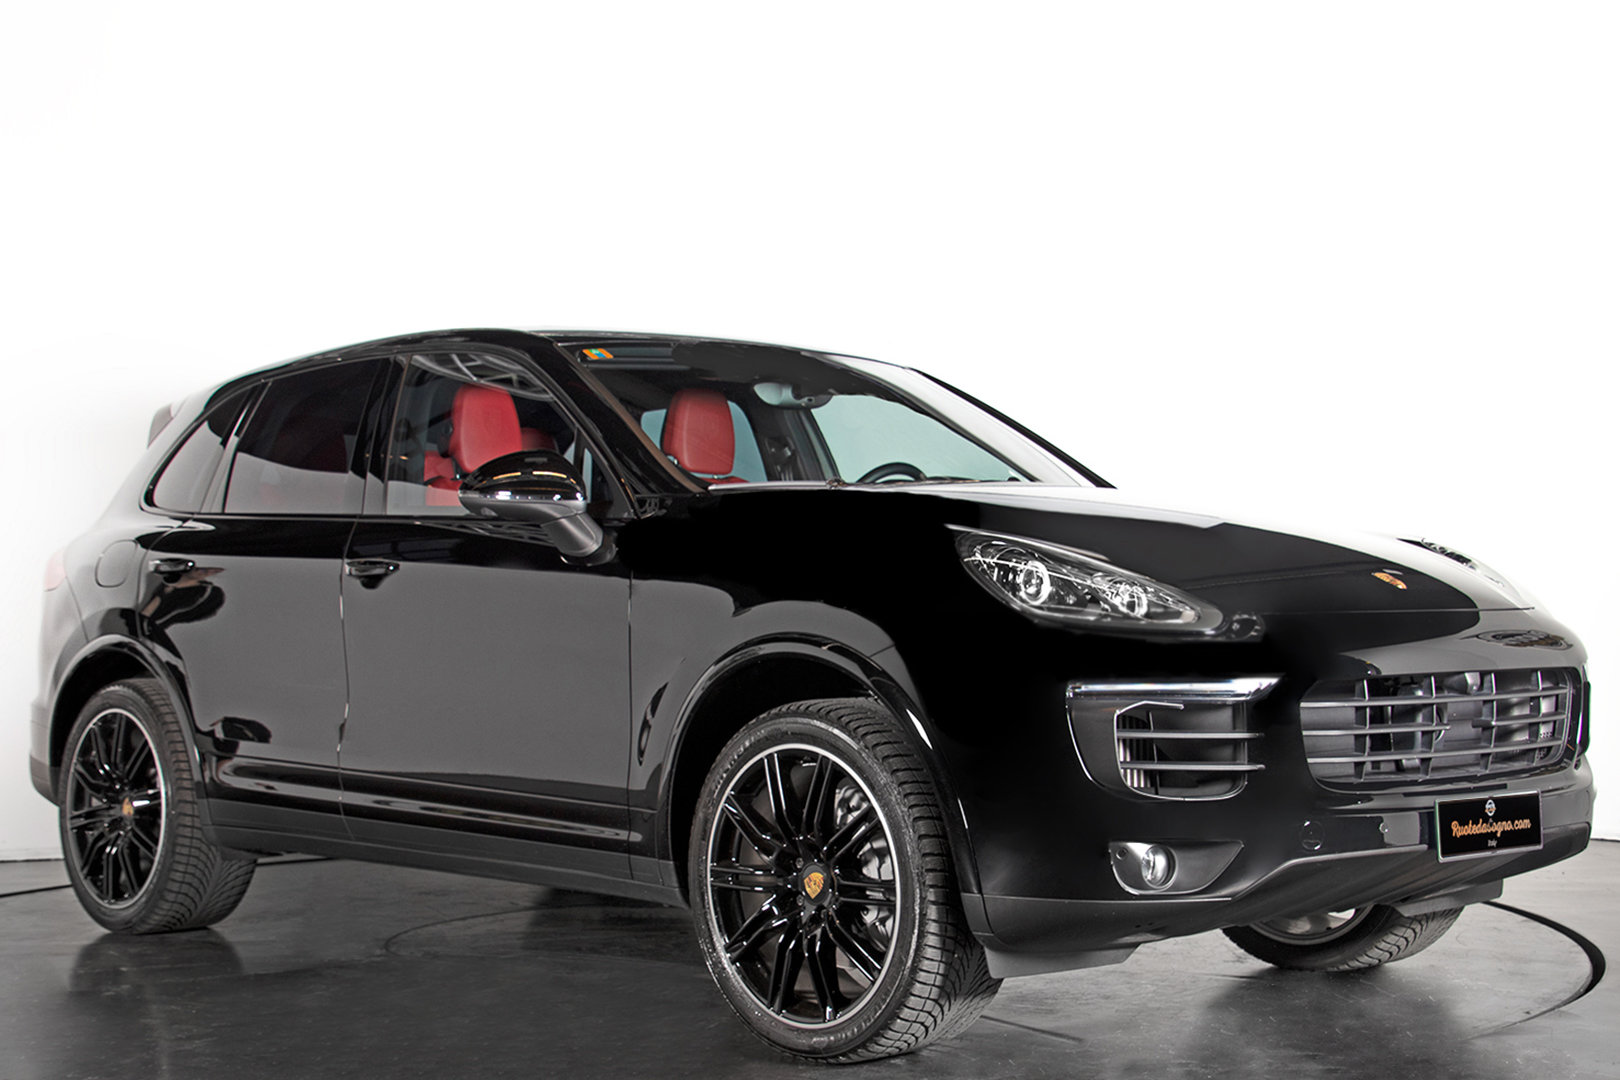 2017 PORSCHE CAYENNE S DIESEL 4.1 For Sale (picture 8 of 11)